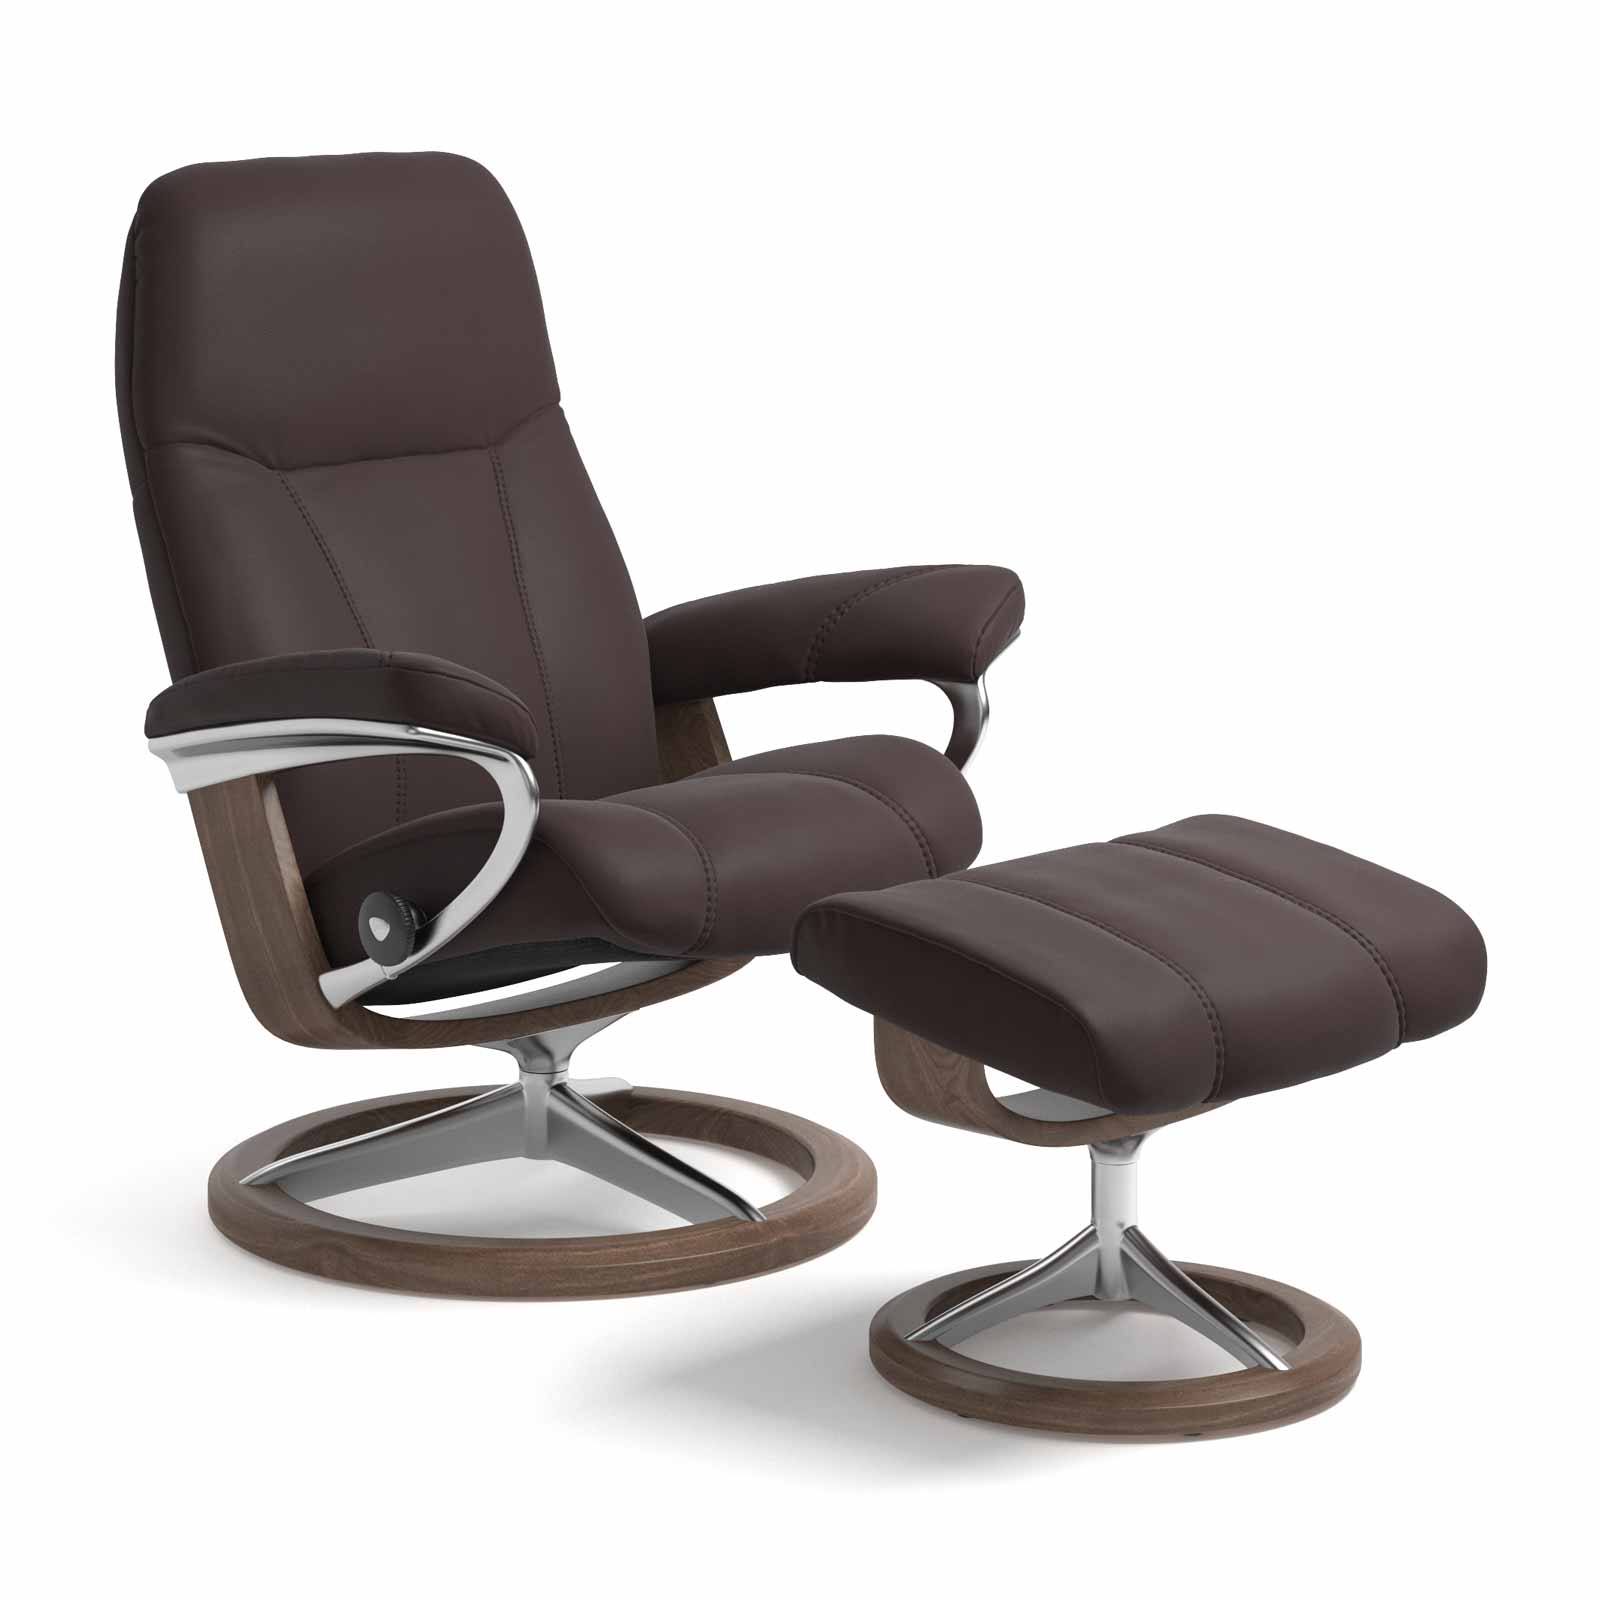 Stressless Sessel Stoffbezug Stressless Sessel Consul Signature Paloma Chocolate Mit Hocker